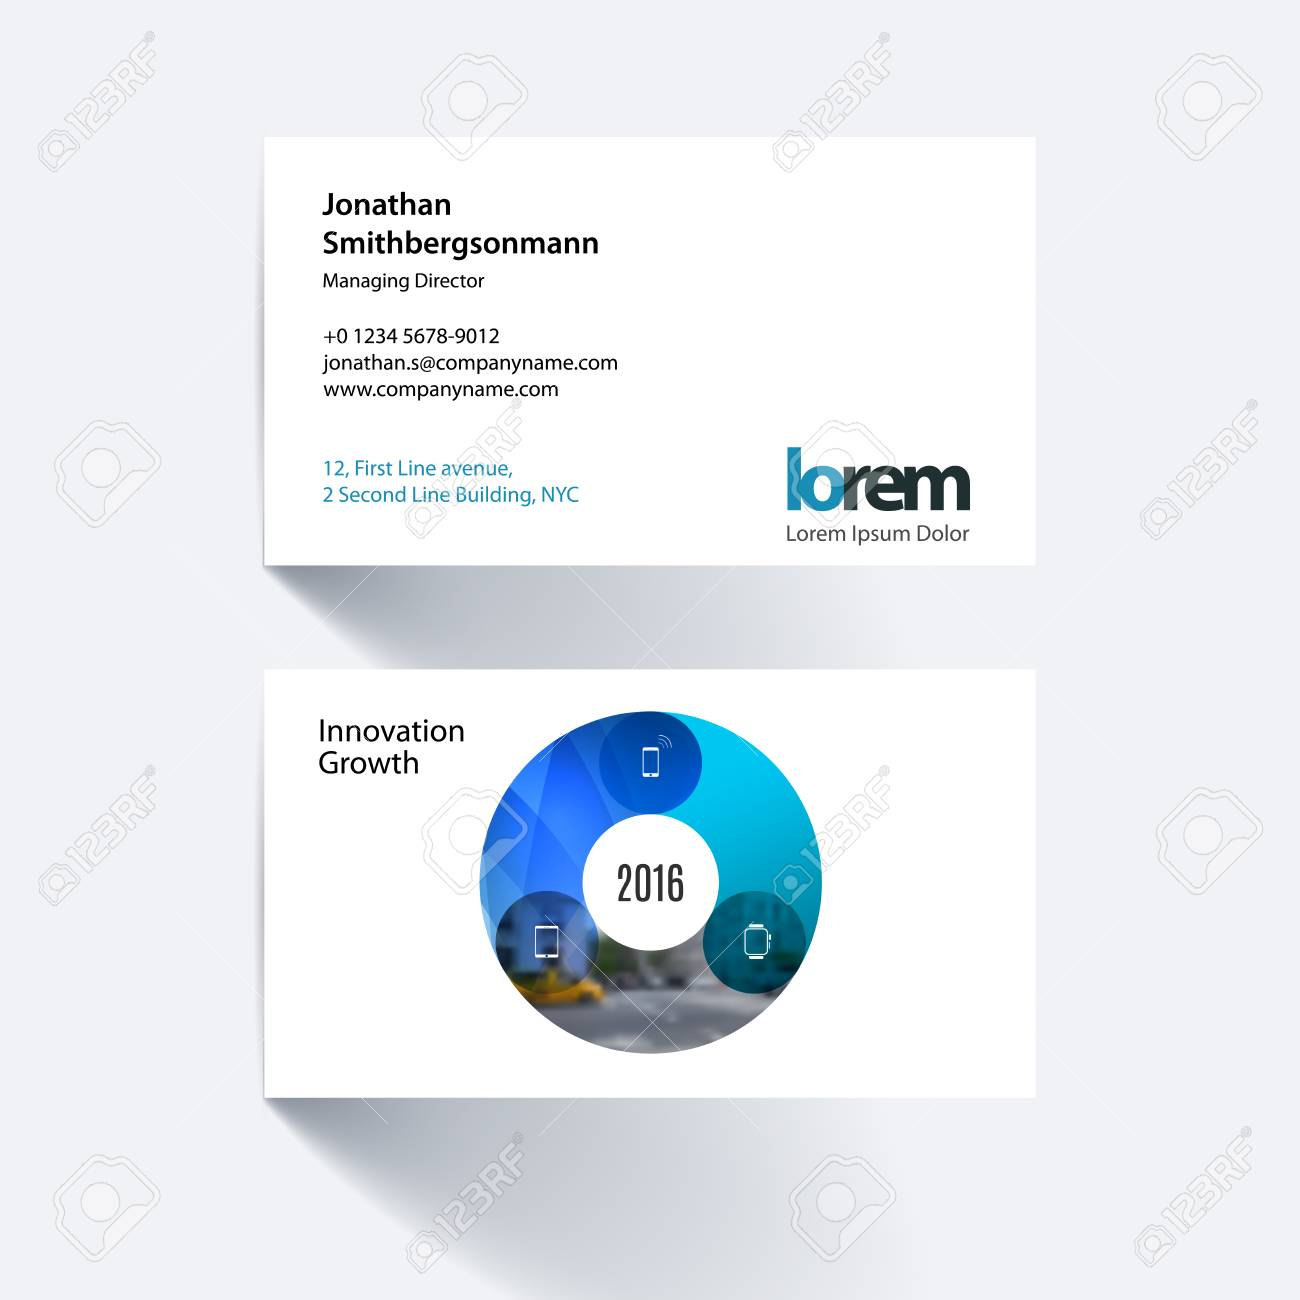 Business Card Template With Circle Round Diagram For IT Business - Round business card template